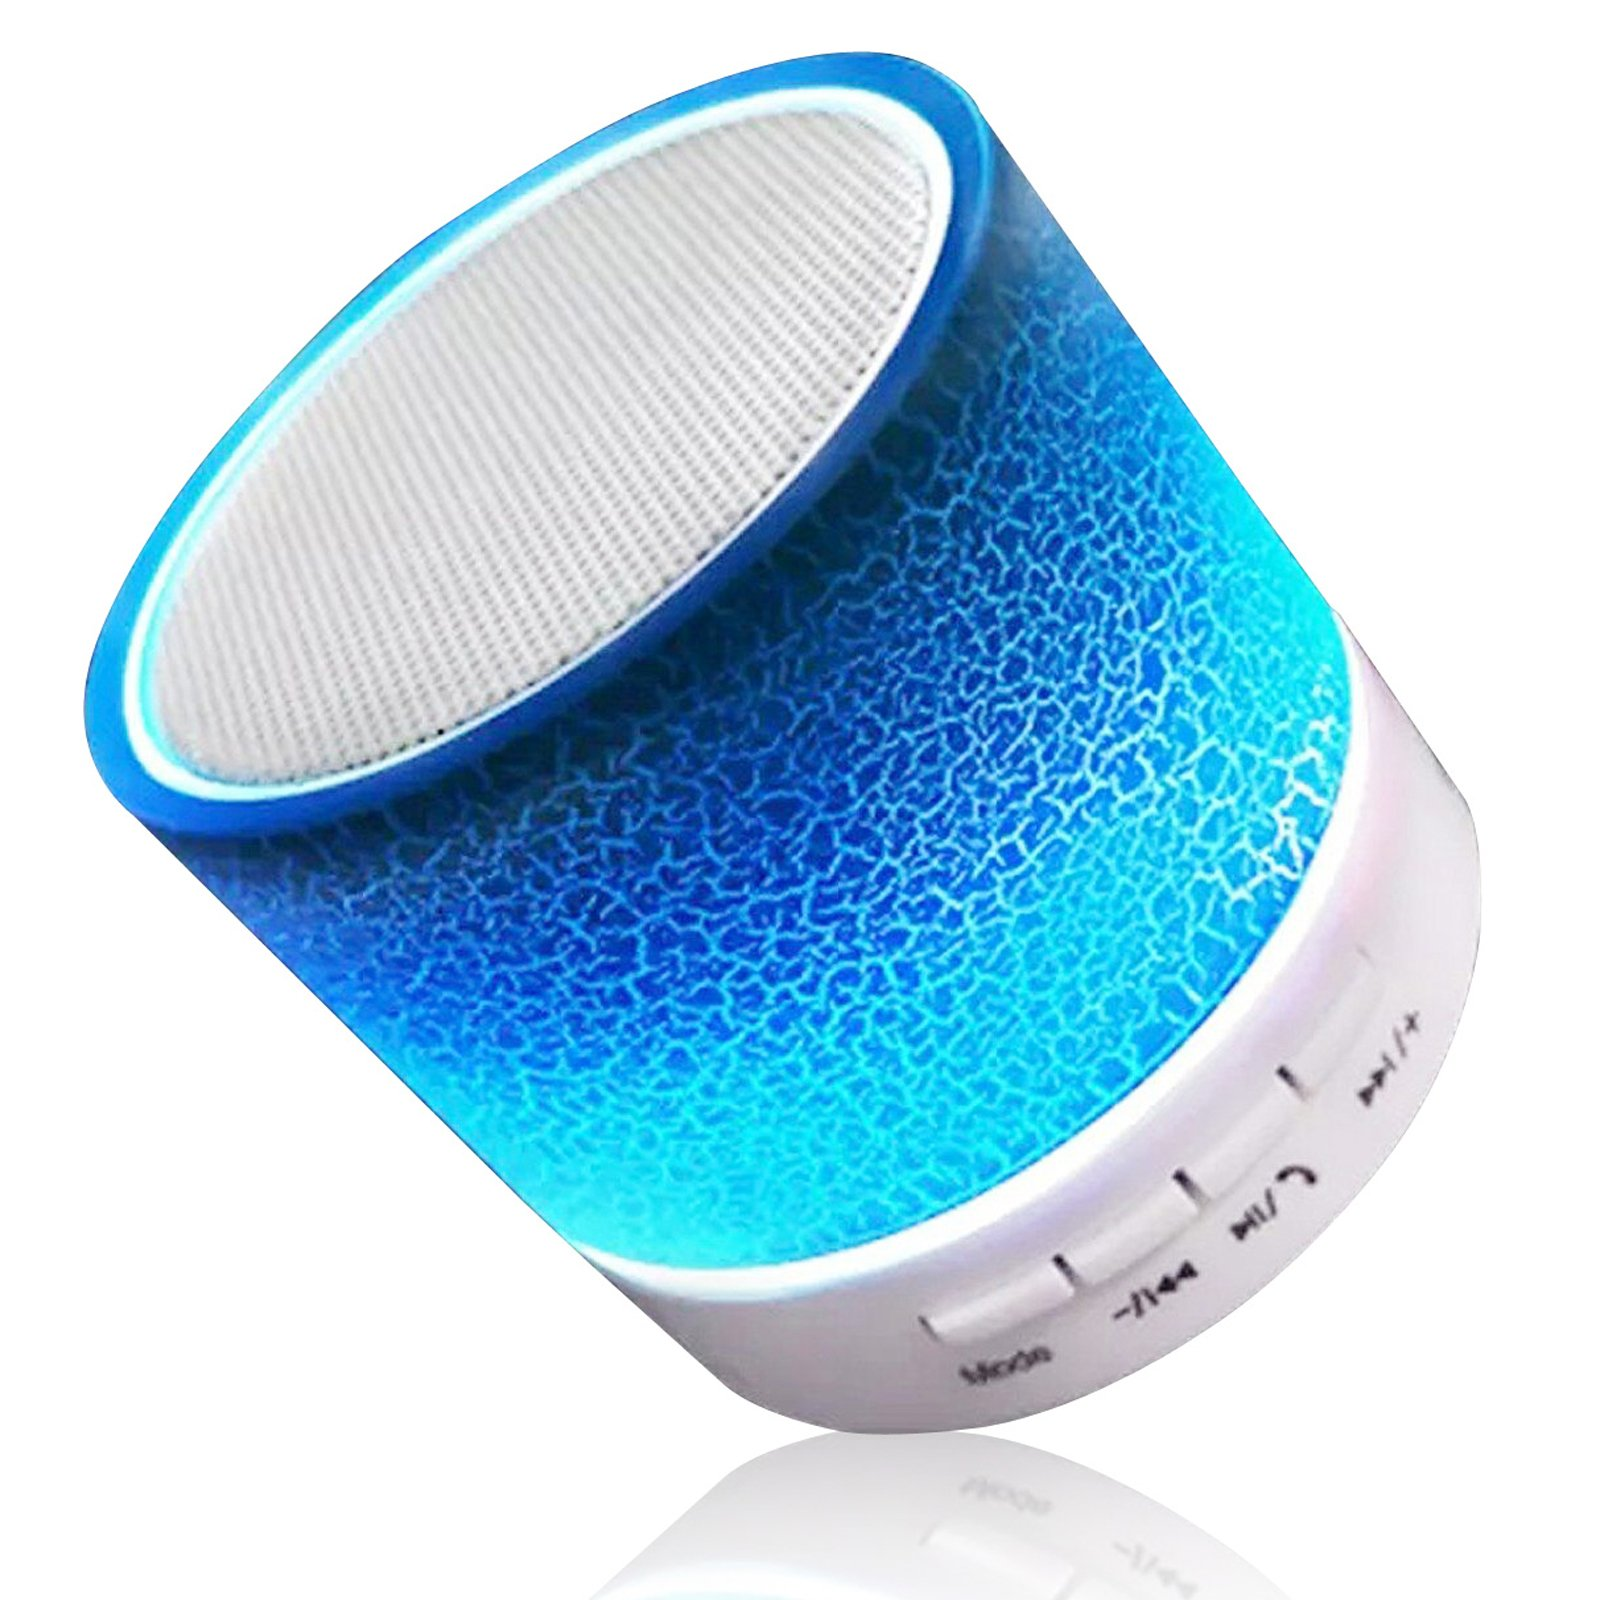 Wireless Bluetooth Speaker Color Changing Speaker Outdoors Mini Speakers with Microphone Tf Card Slot FM Radio for Ios Iphone 8 7 6 6S Plus 5S 4S Android Smartphones and Other Bluetooth Devices Blue